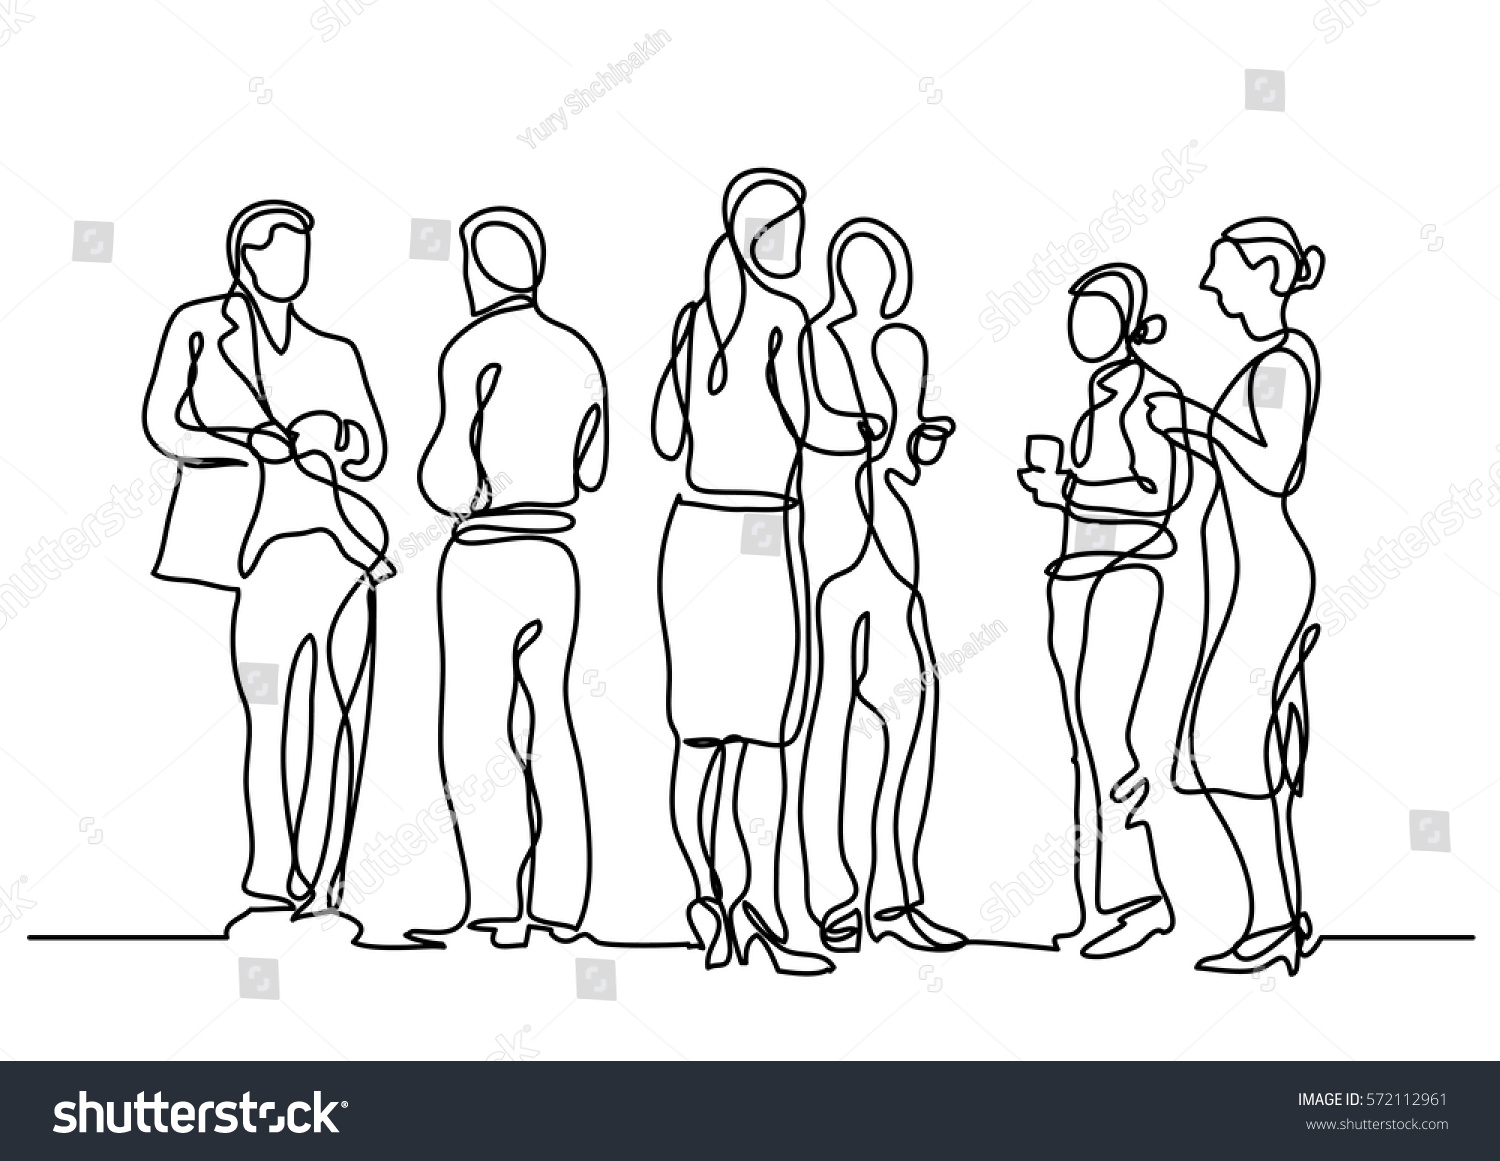 Drawing Lines In Office : Continuous line drawing office party stock vector